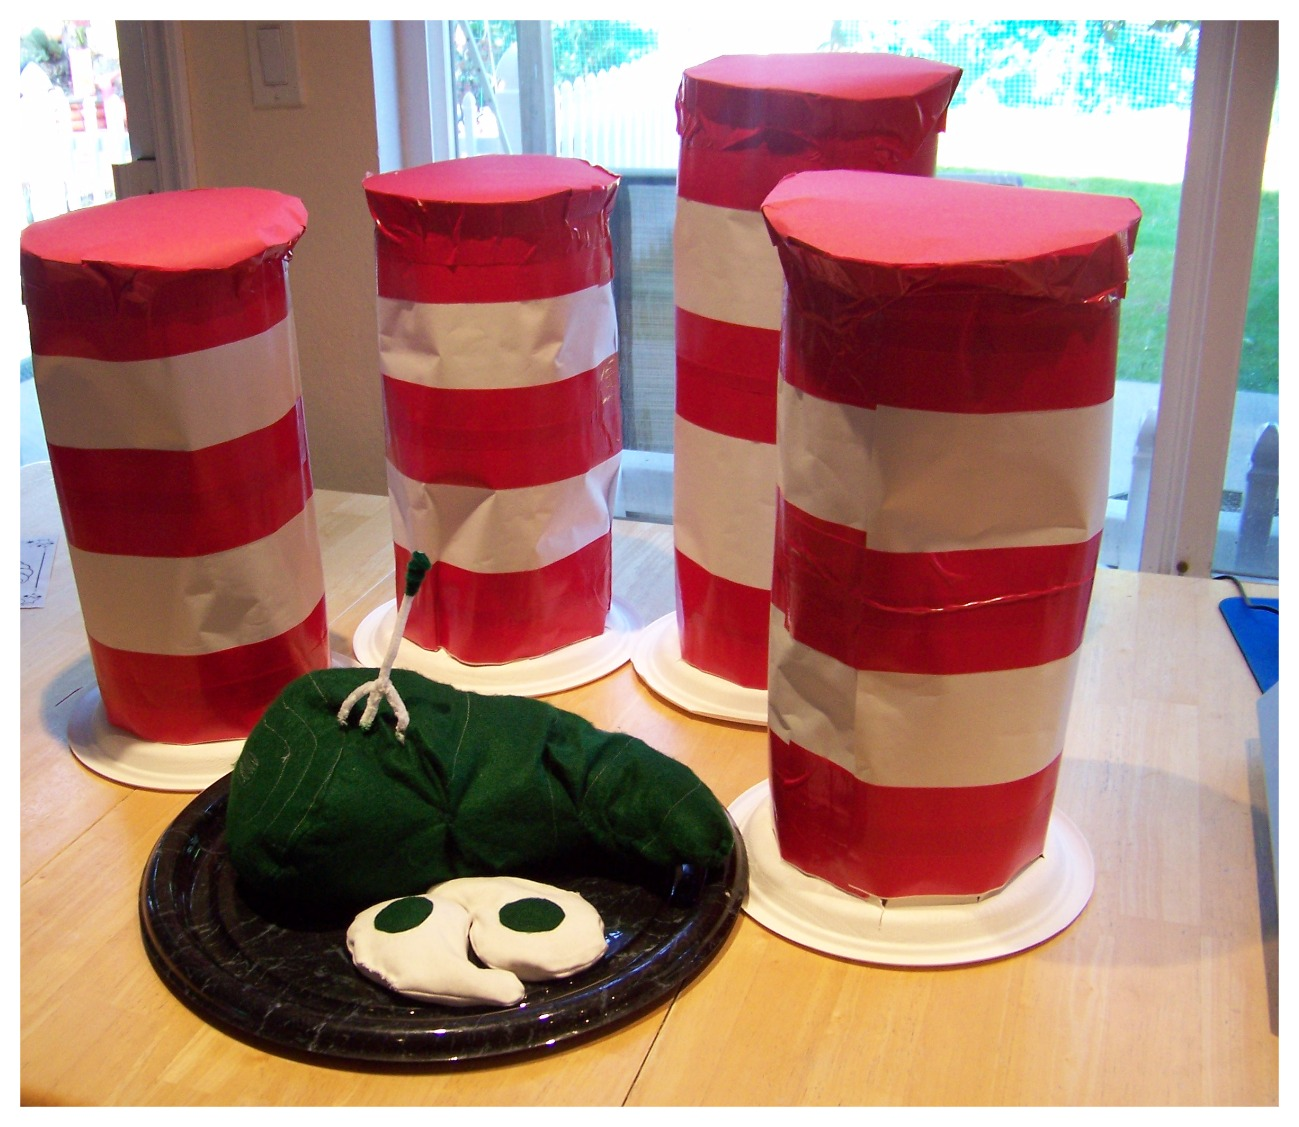 Dr. Seuss Cat in the Hat Hats